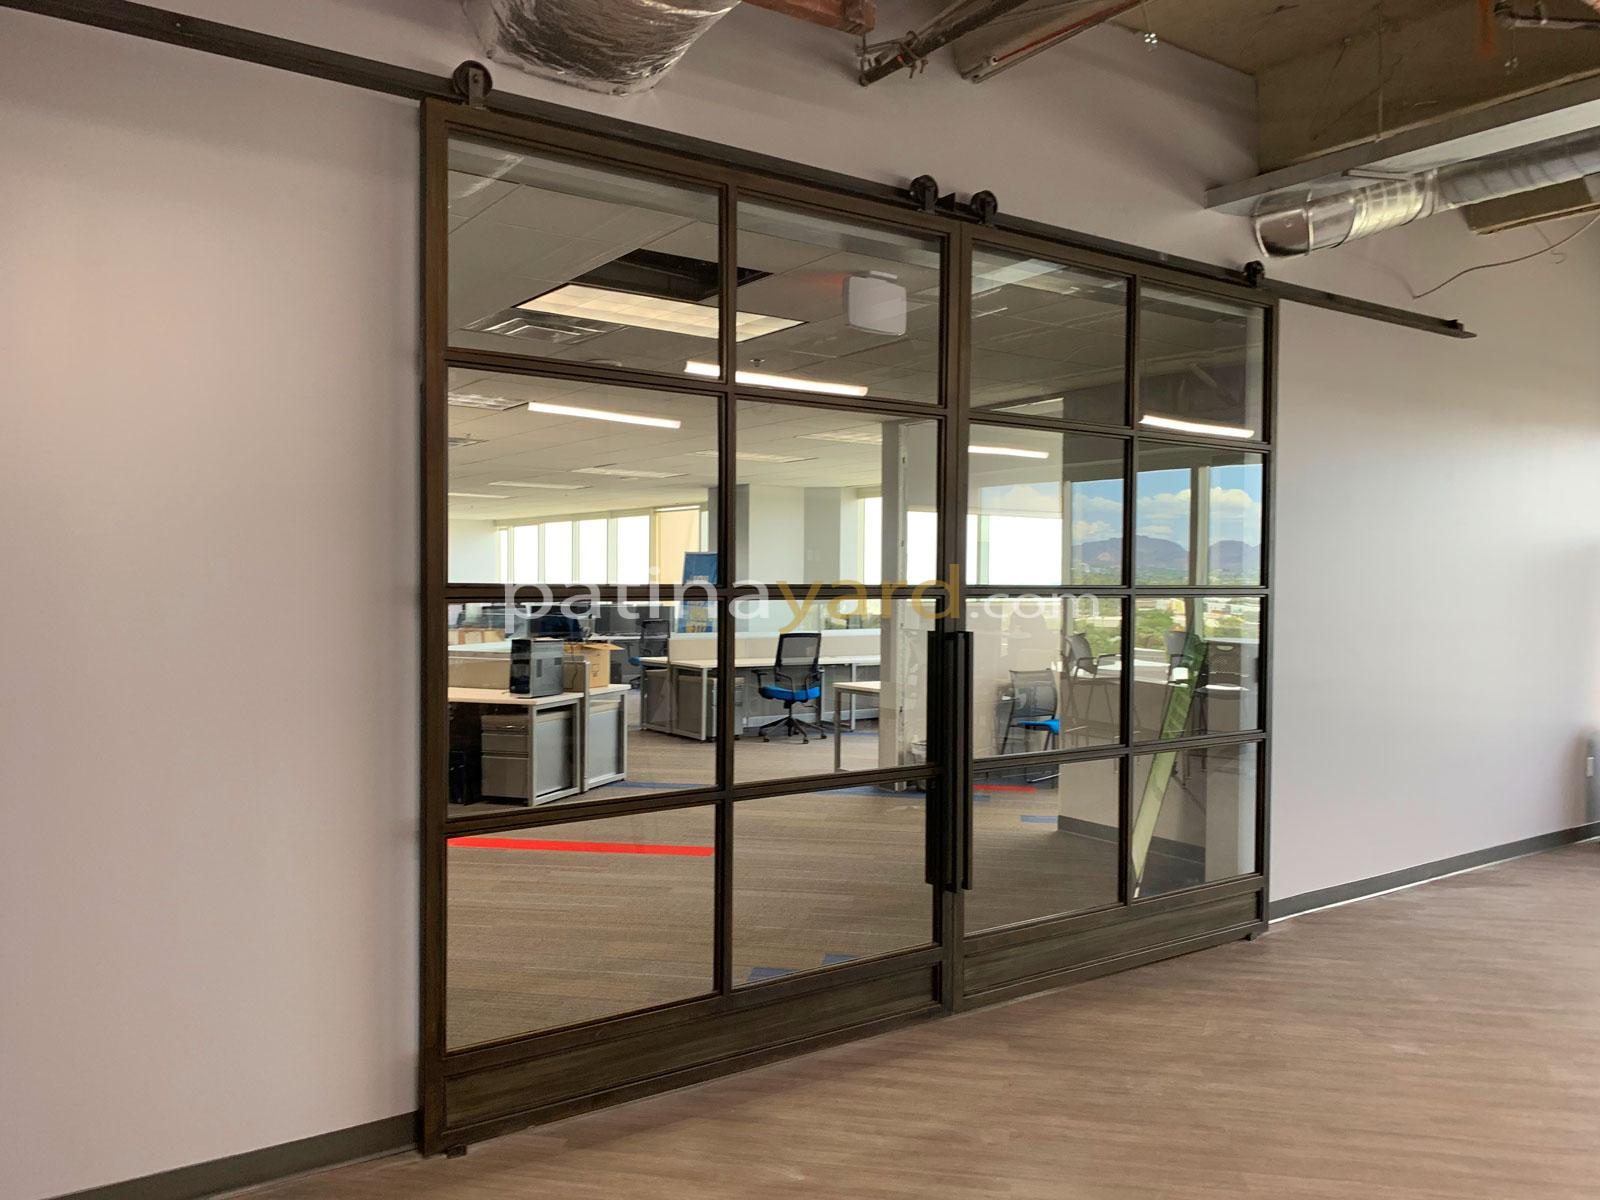 Commercial large double metal and glass barn doors